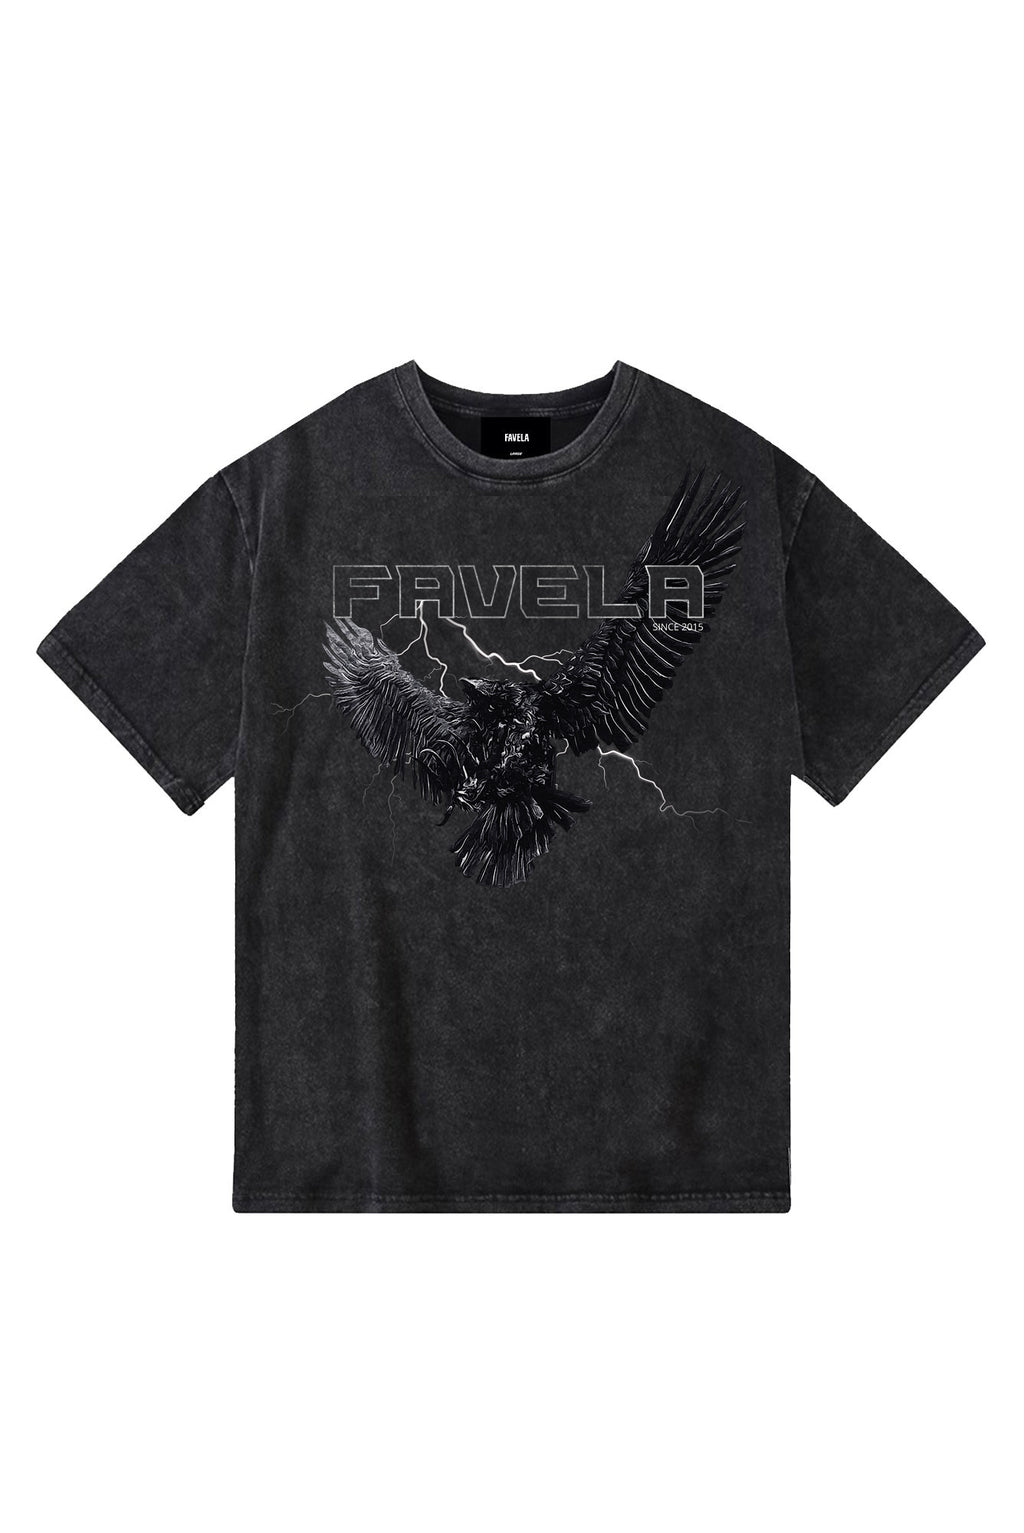 EAGLE ENZYME BLACK T-SHIRT